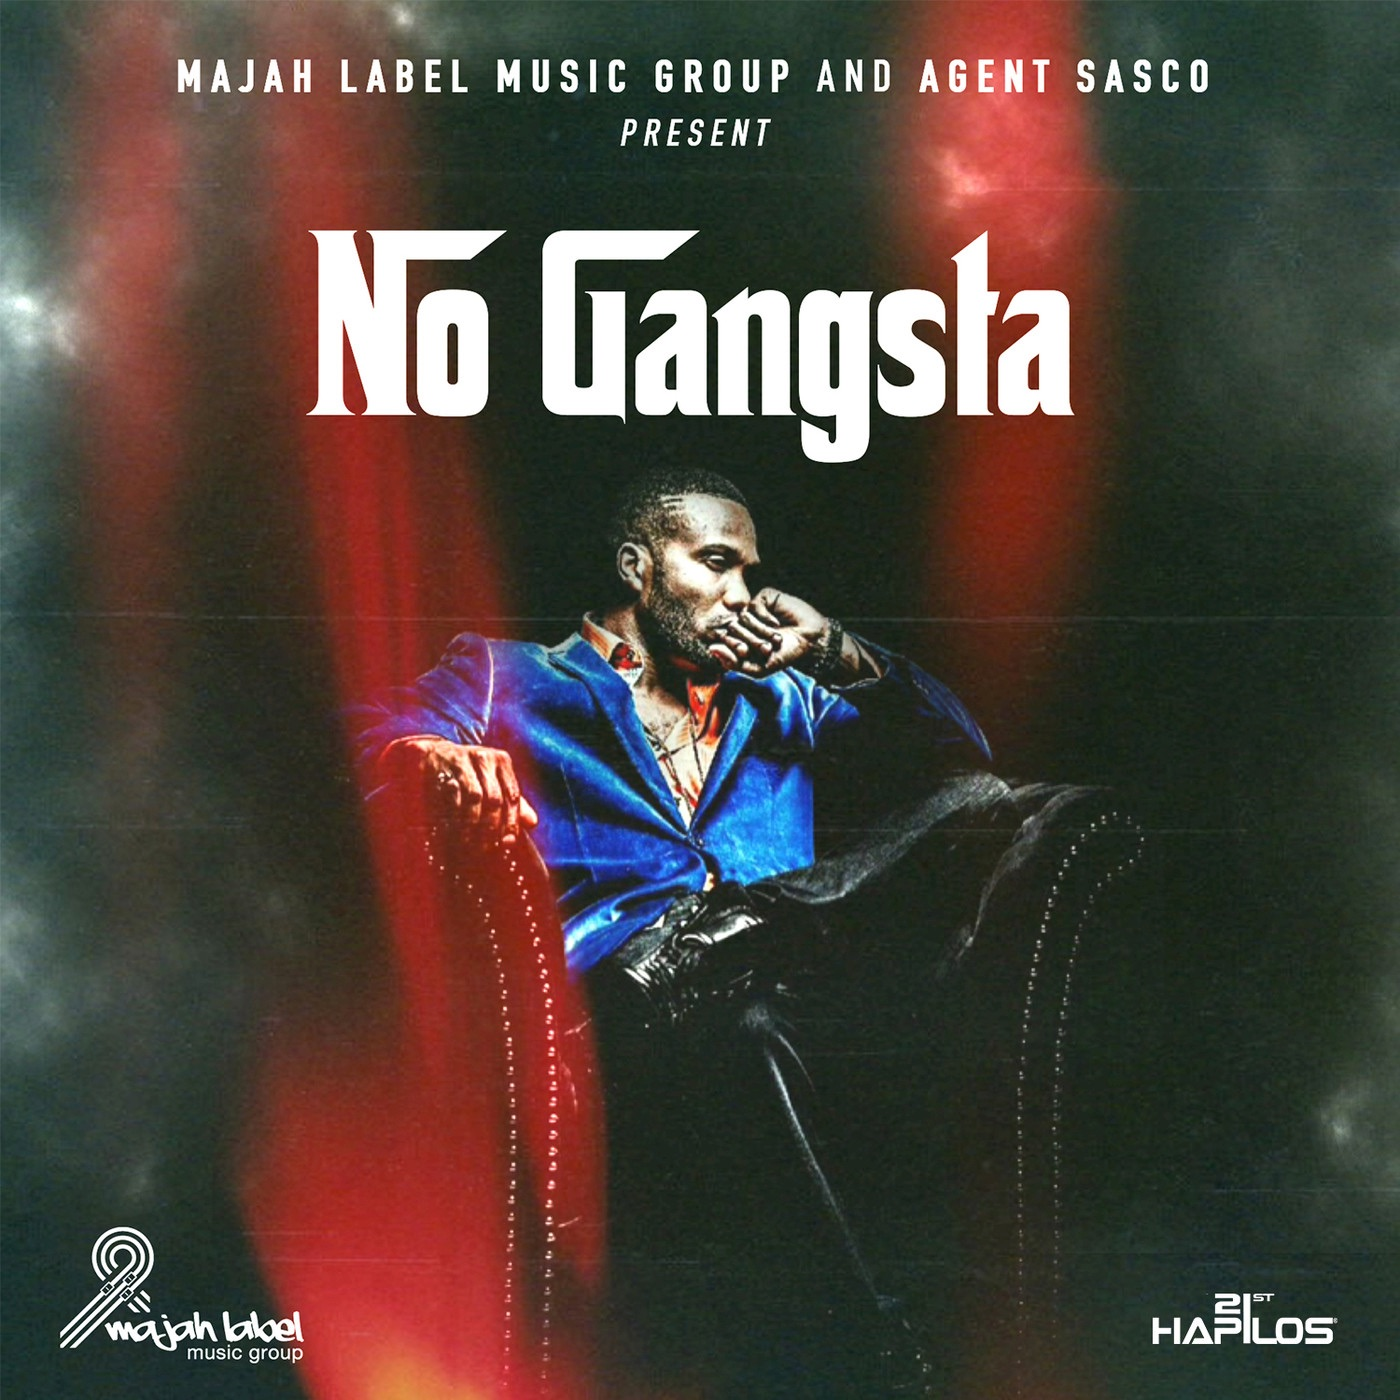 MP3 Songs Online:♫ No Gansta - Agent Sasco (Assassin) album No Gangsta - Single. Reggae,Modern Dancehall,Music listen to music online free without downloading.